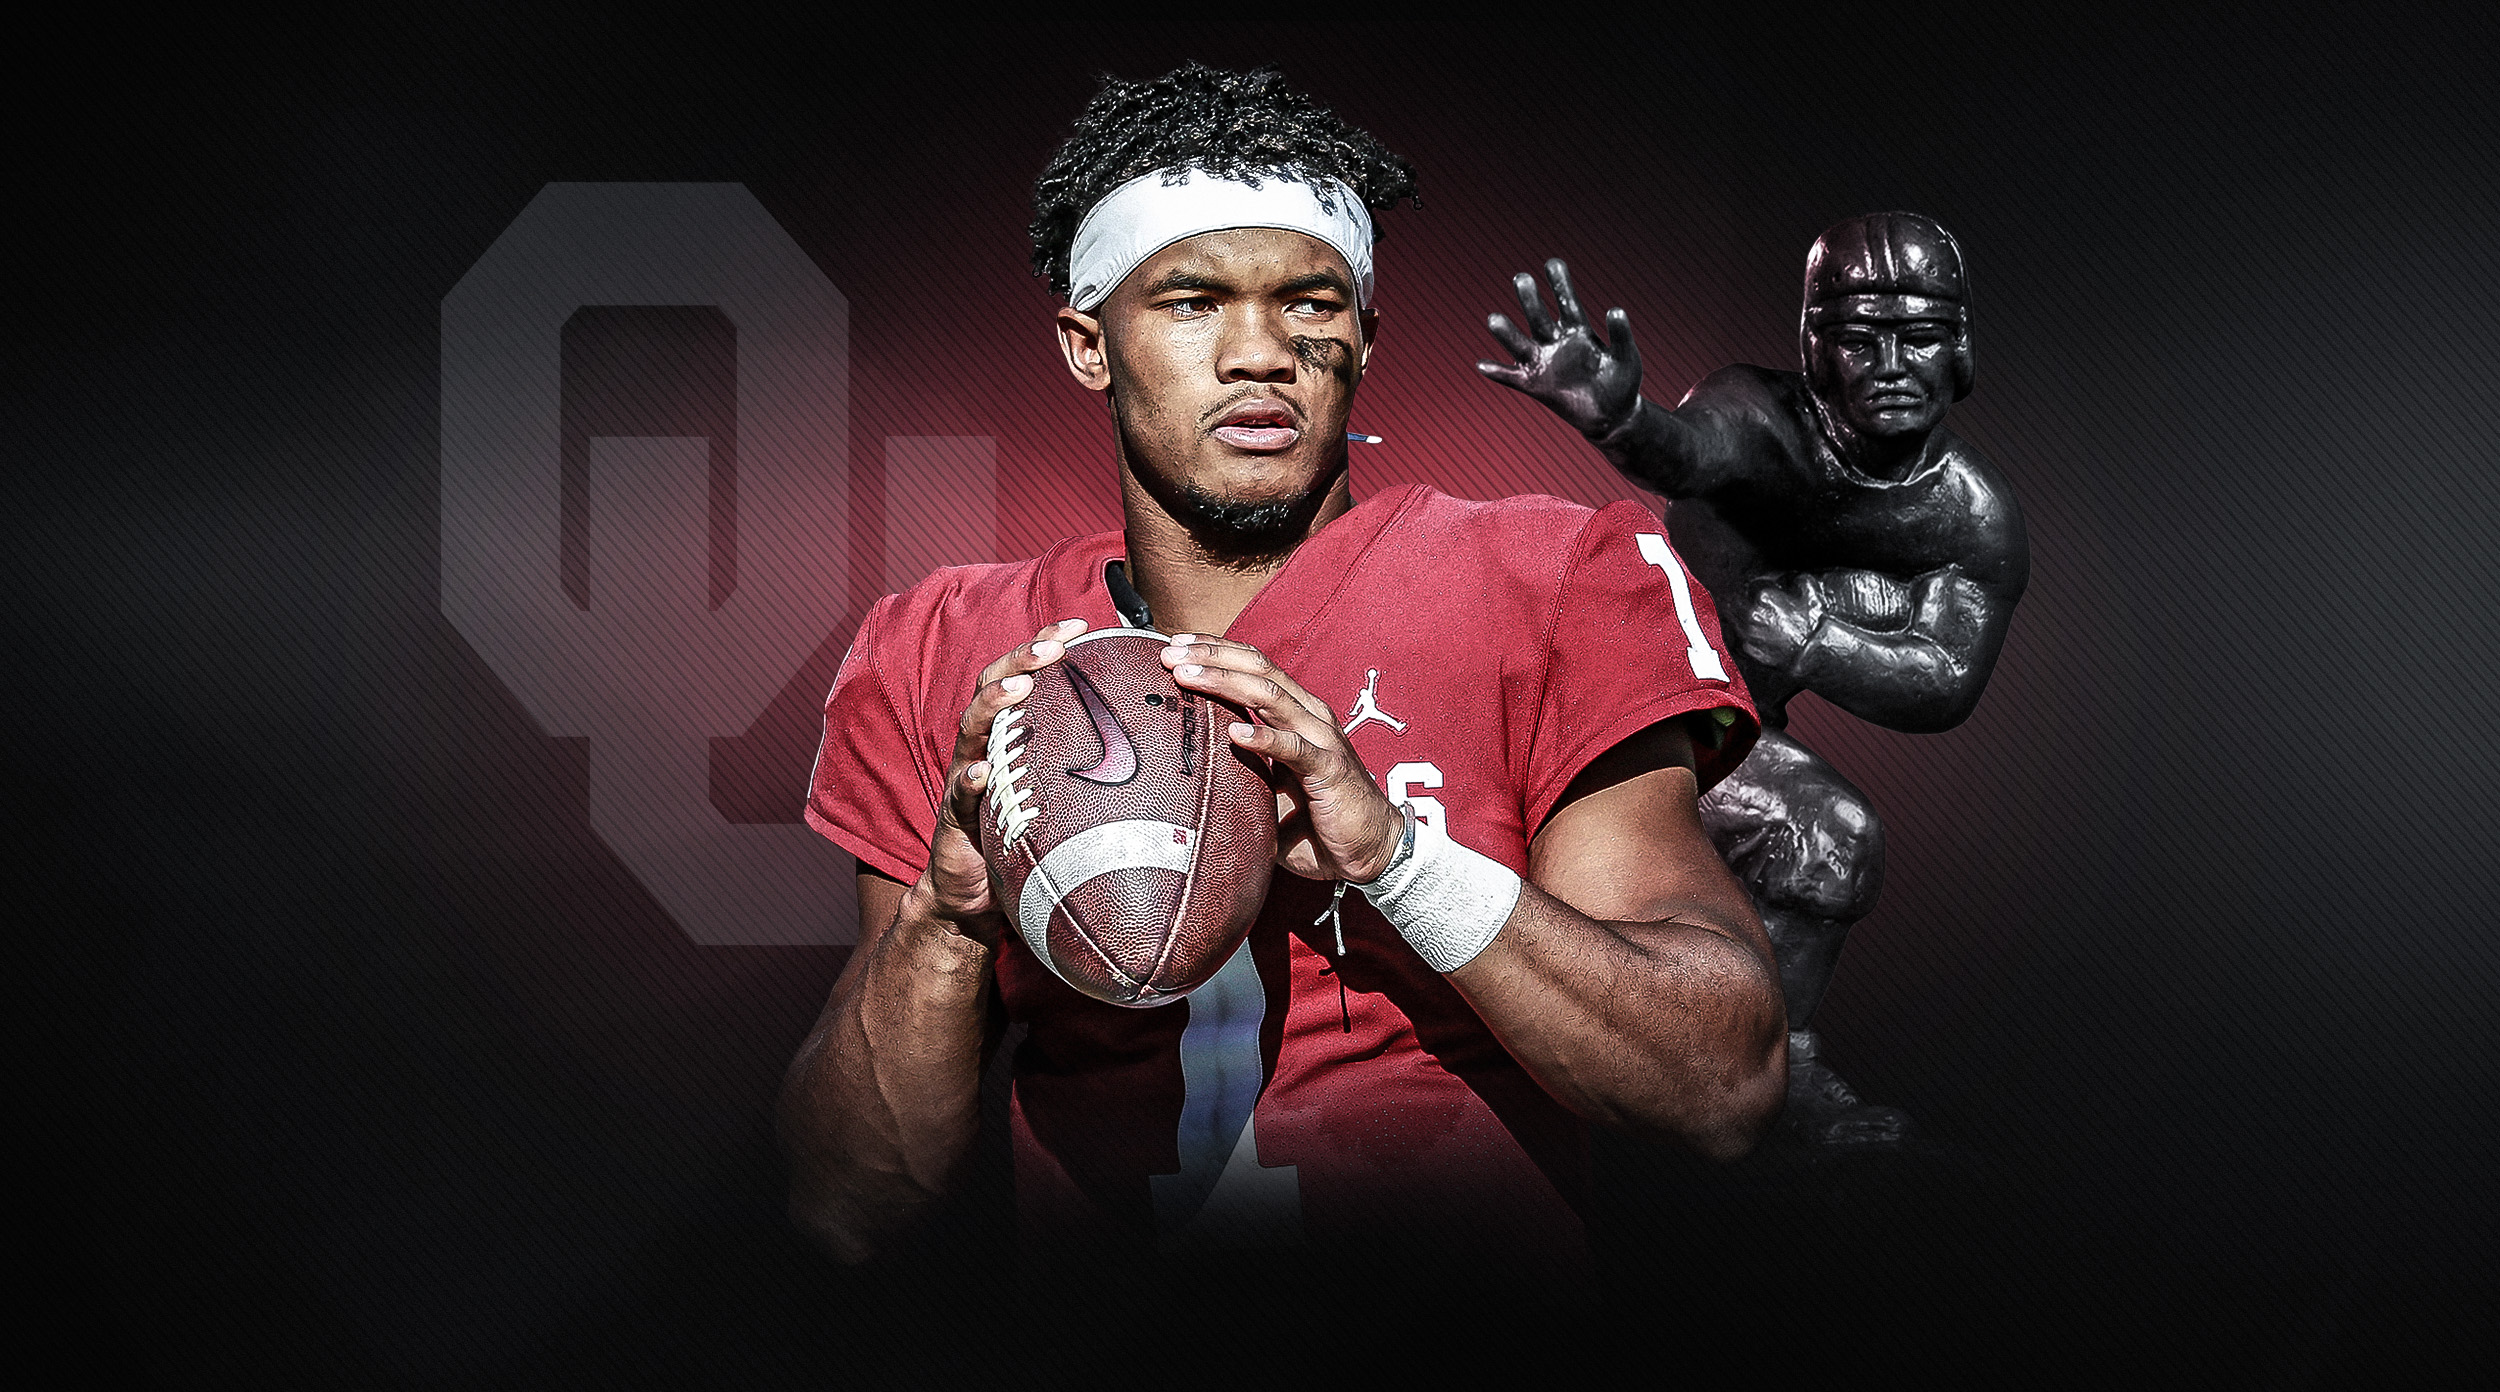 Kyler Murray's Heisman Trophy win further proof of